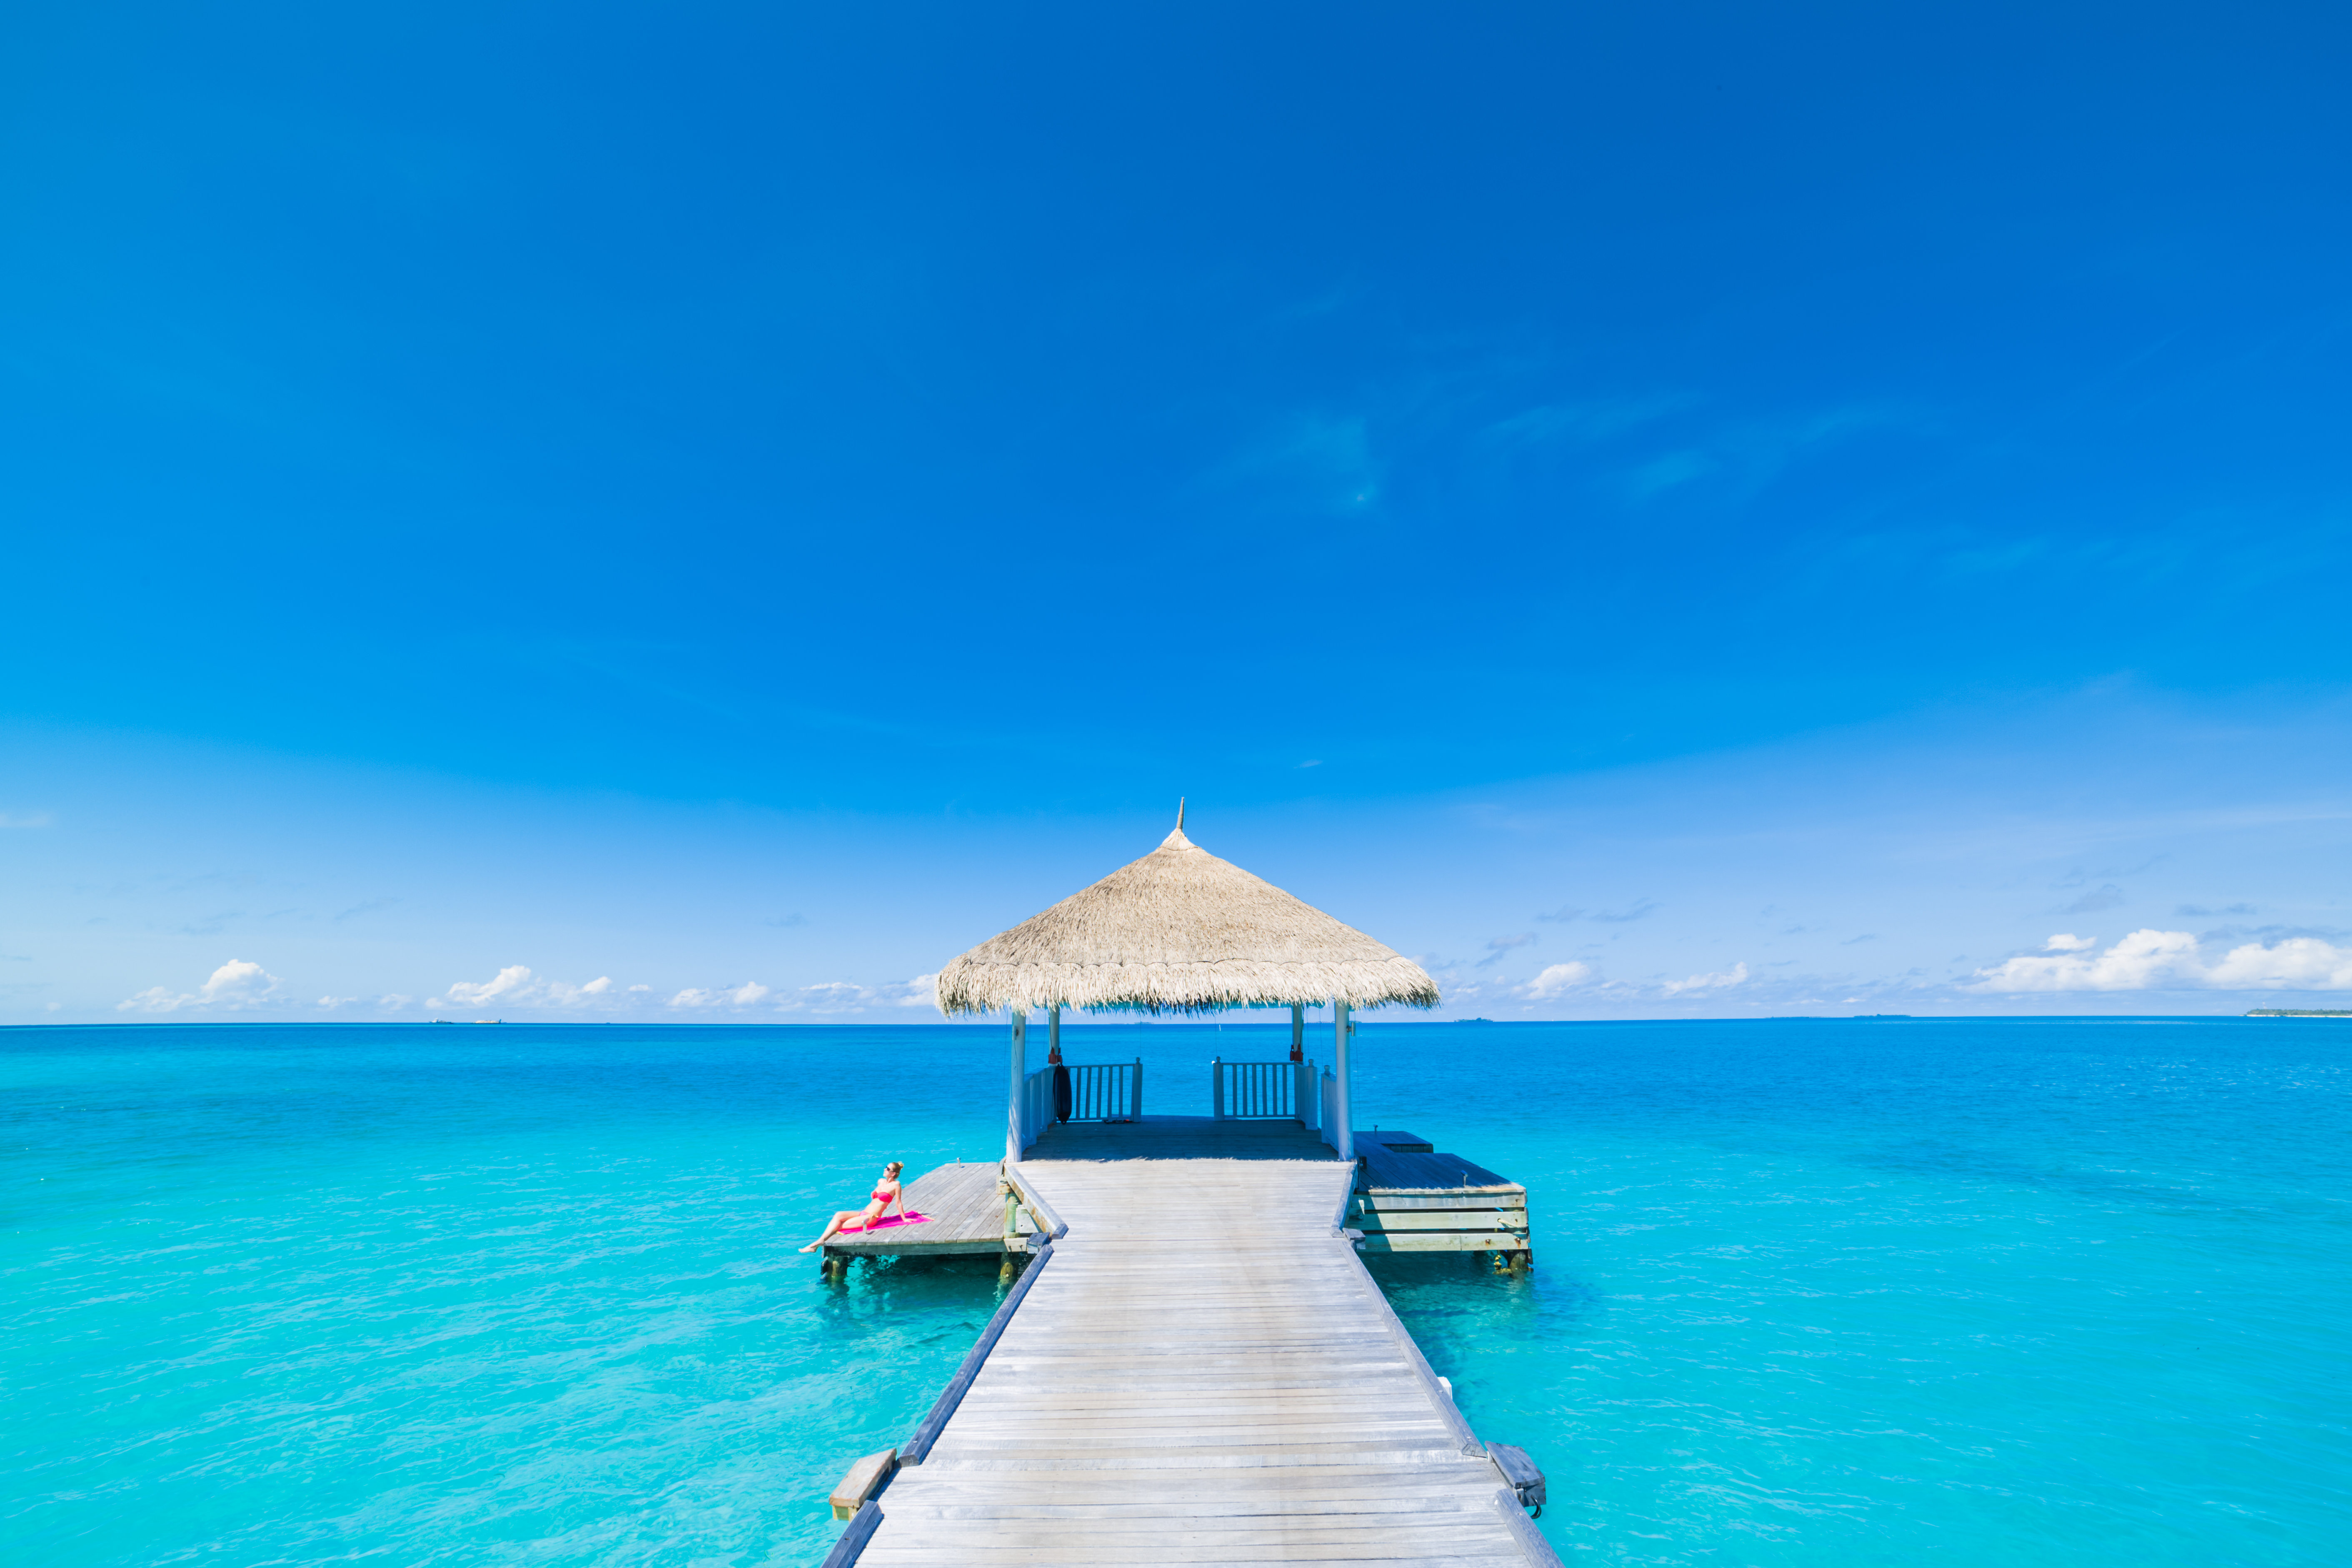 Luxury summer travel holiday vacation concept background.